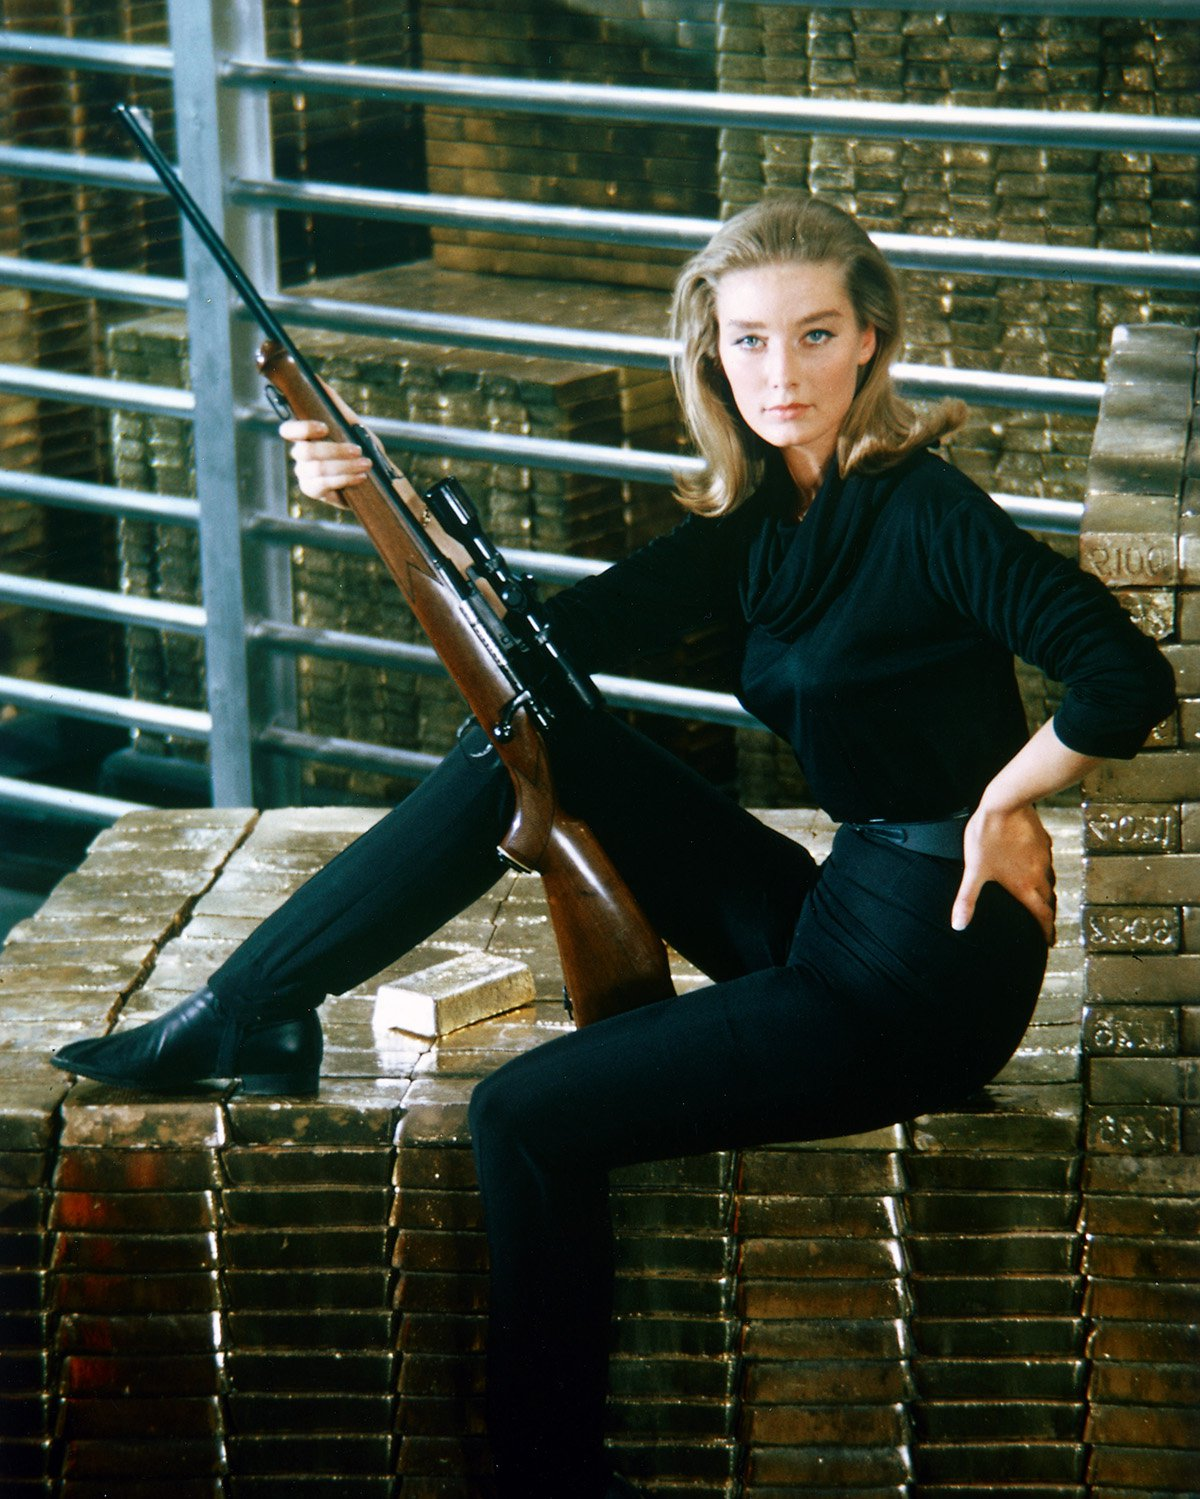 Goldfinger's Tania Mallet dead at 77 as James Bond fans pay tribute